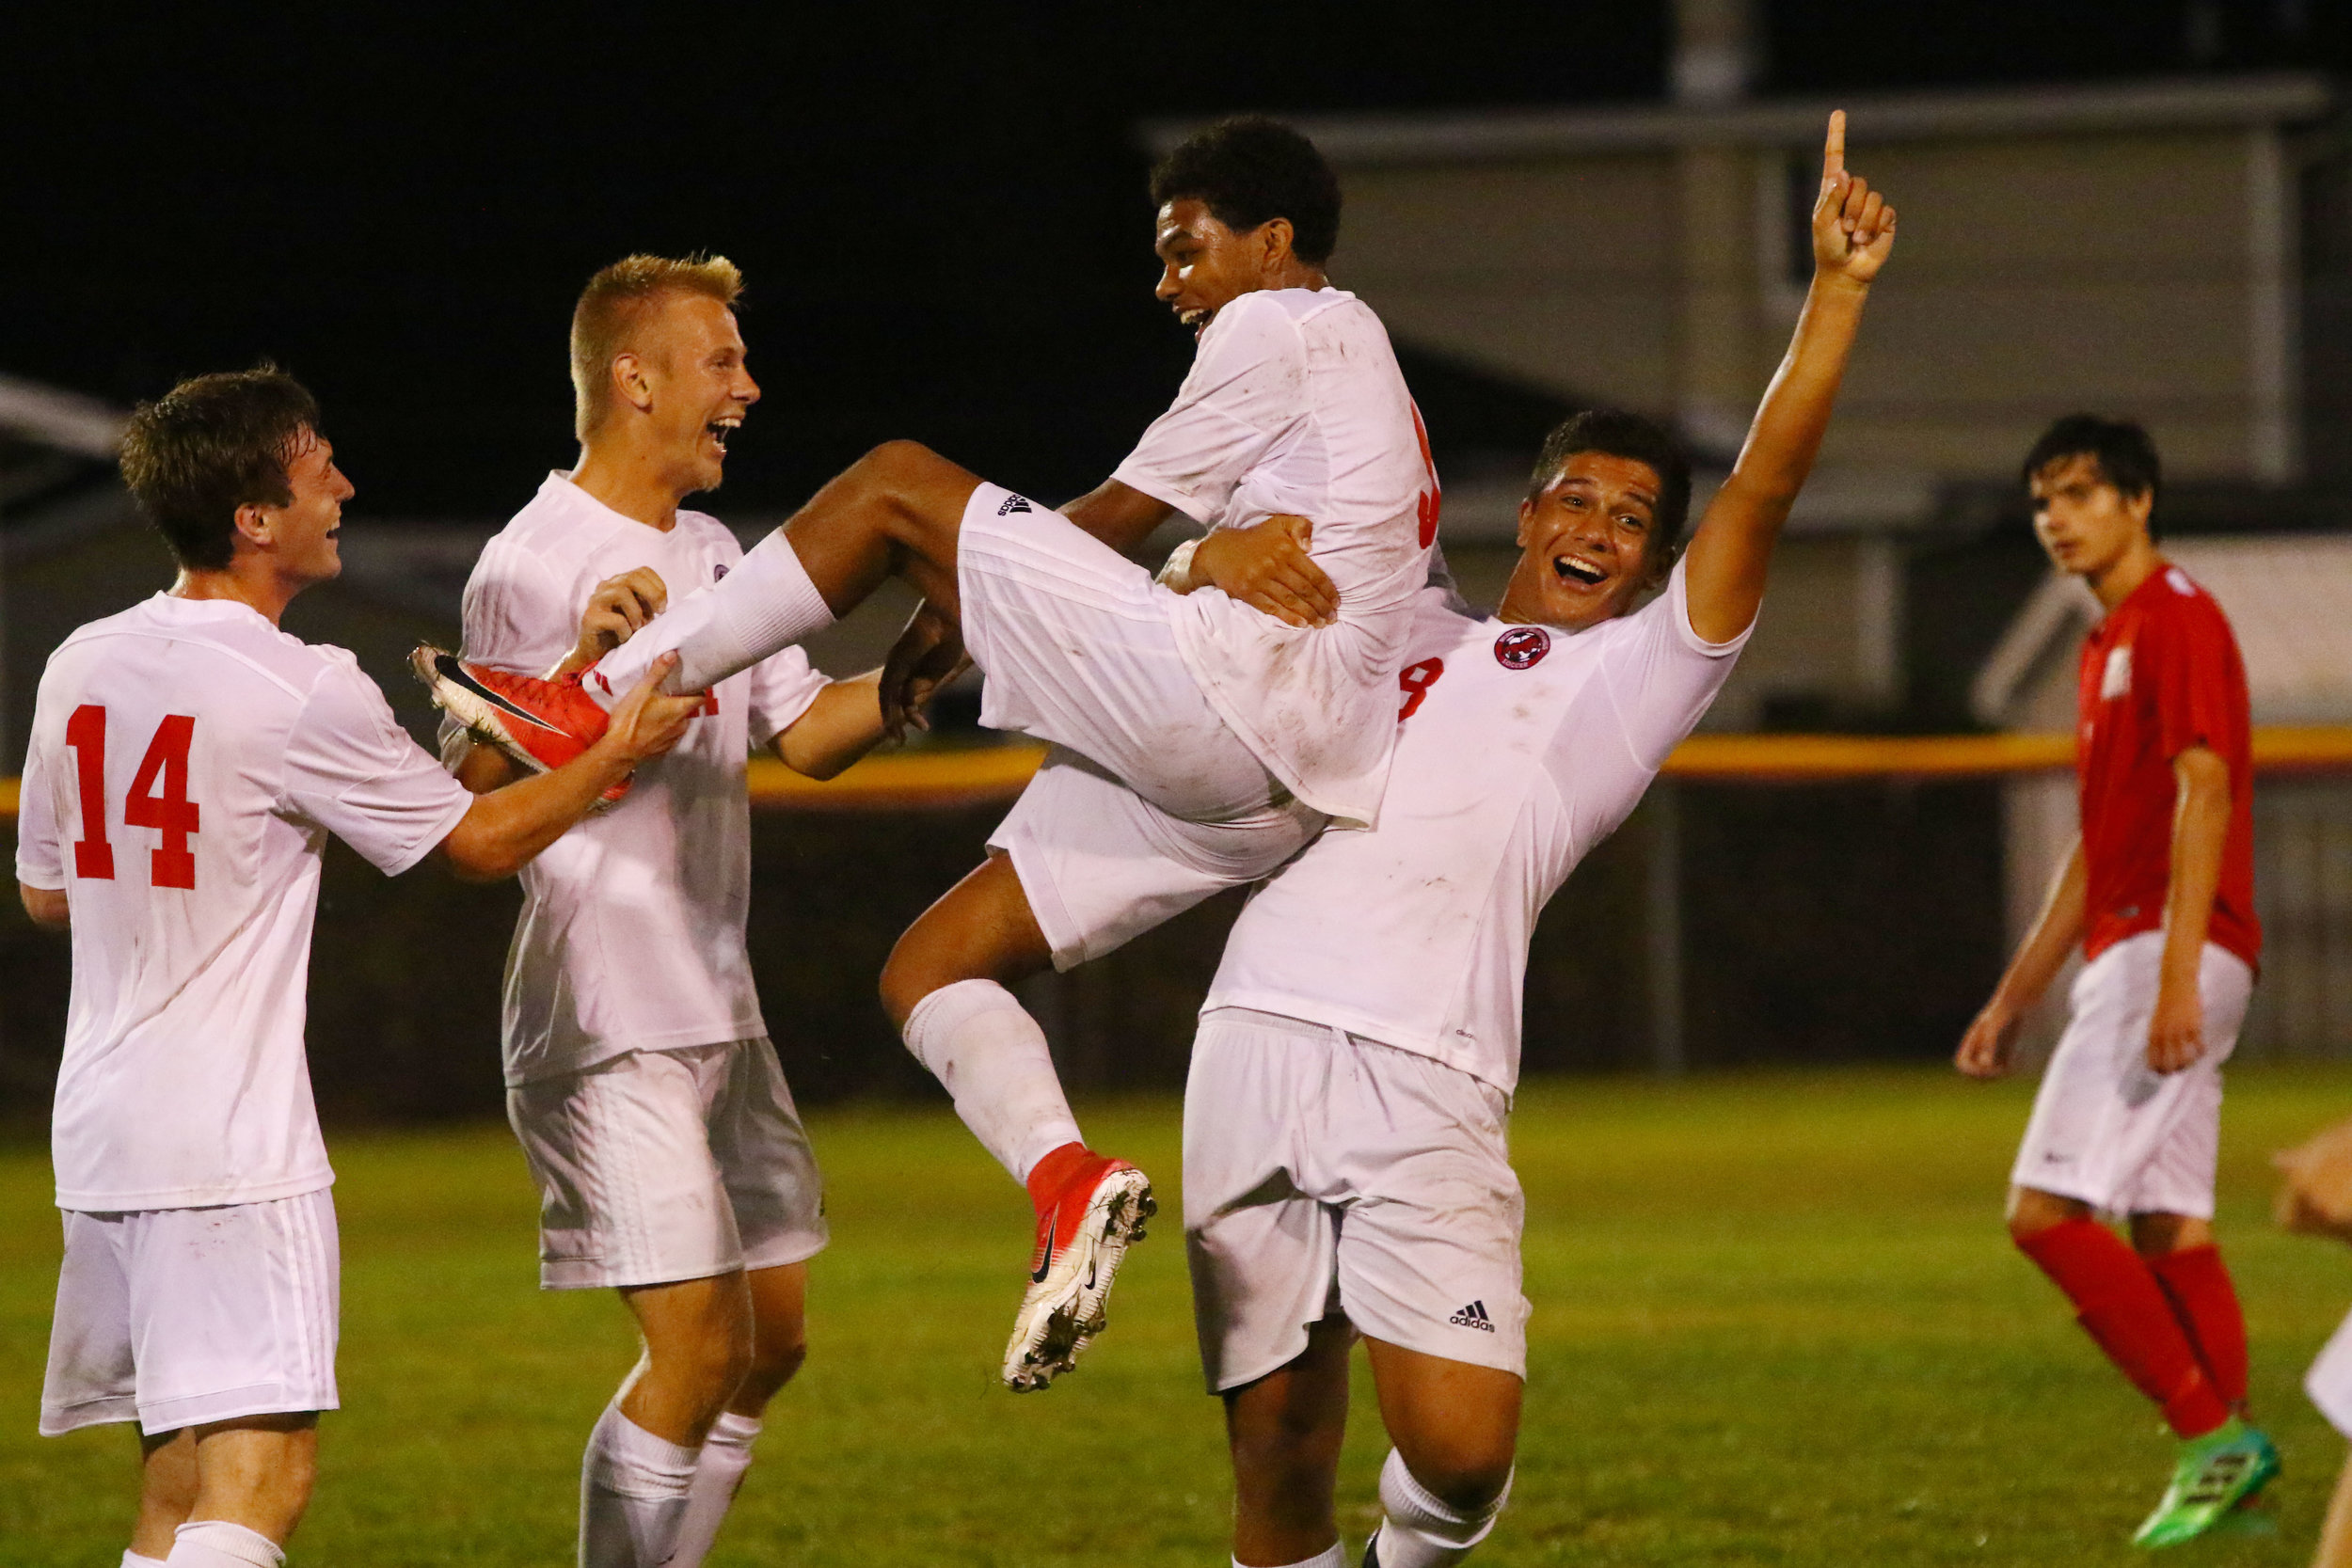 Munster's Evan DuBose, center, is hoisted after he scored the fifth goal for the Mustangs against Crown Point in Munster.